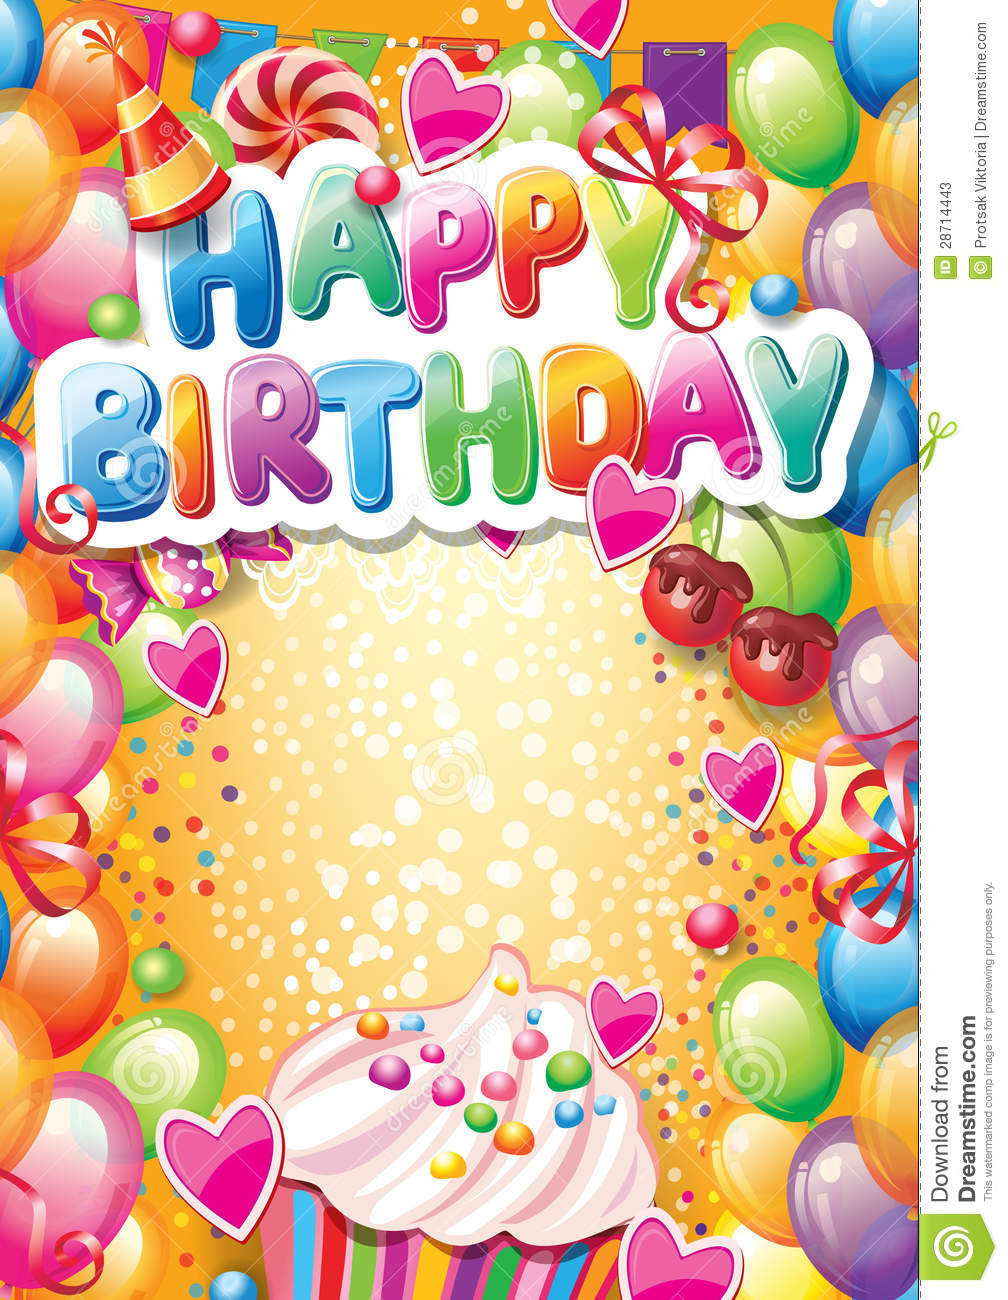 Template For Happy Birthday Card Photos Image 28714443 – Happy Birthday Cards Templates